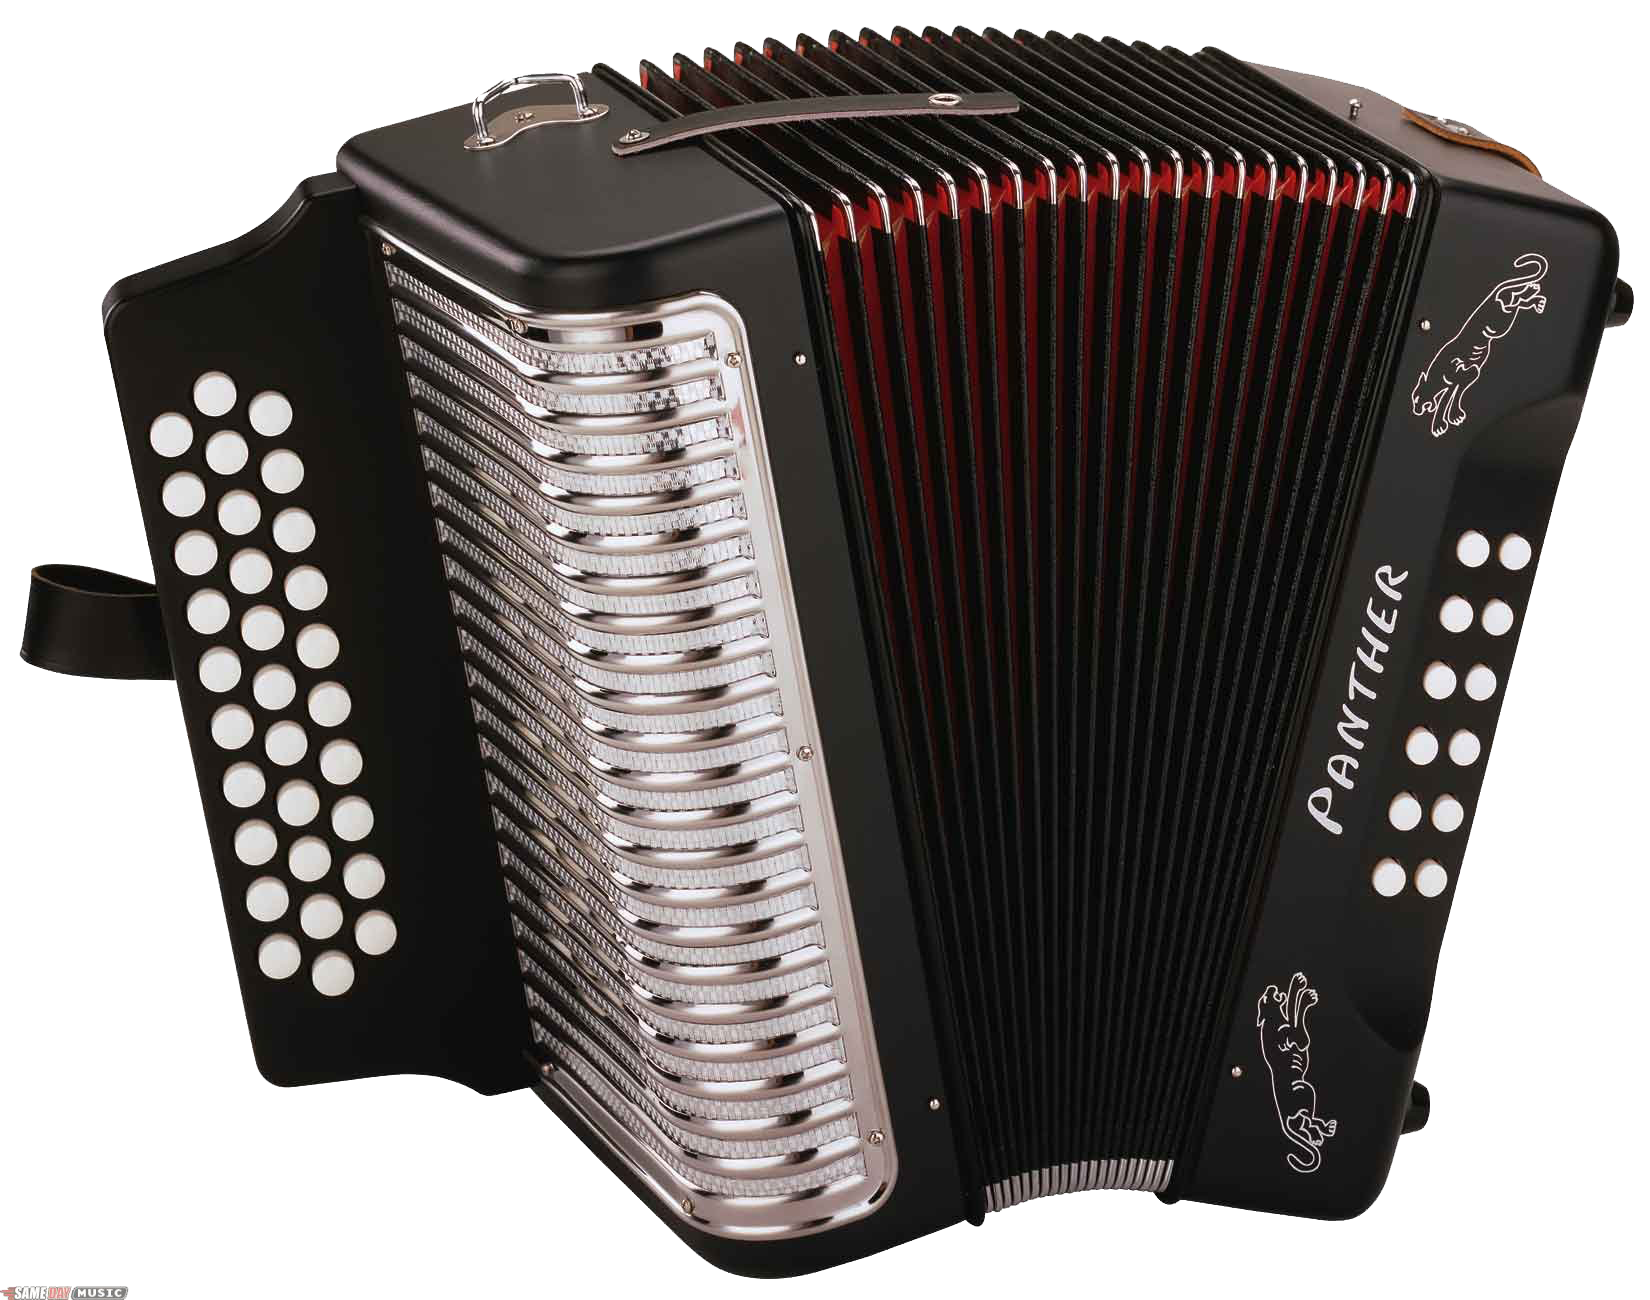 Accordion Png Image - Accordion, Transparent background PNG HD thumbnail